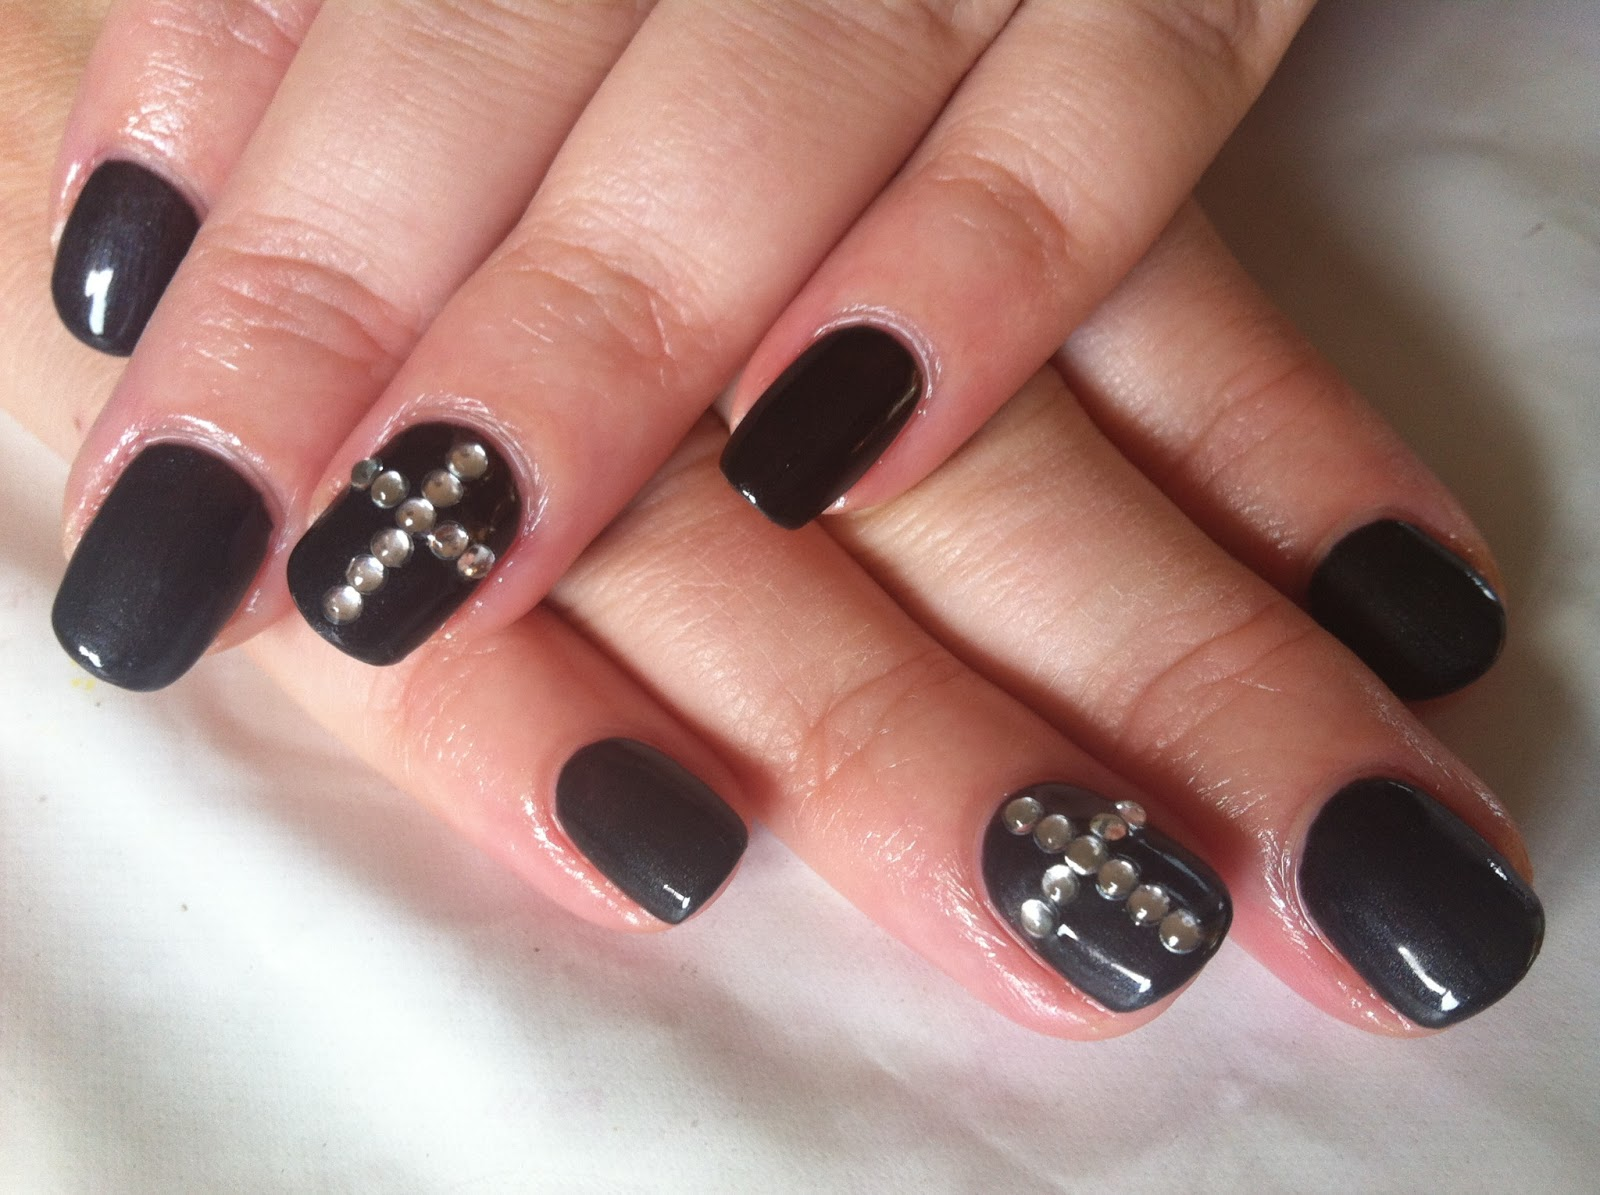 Brush up and polish up cnd shellac nail art overtly onyx crosses cnd shellac nail art overtly onyx crosses prinsesfo Images